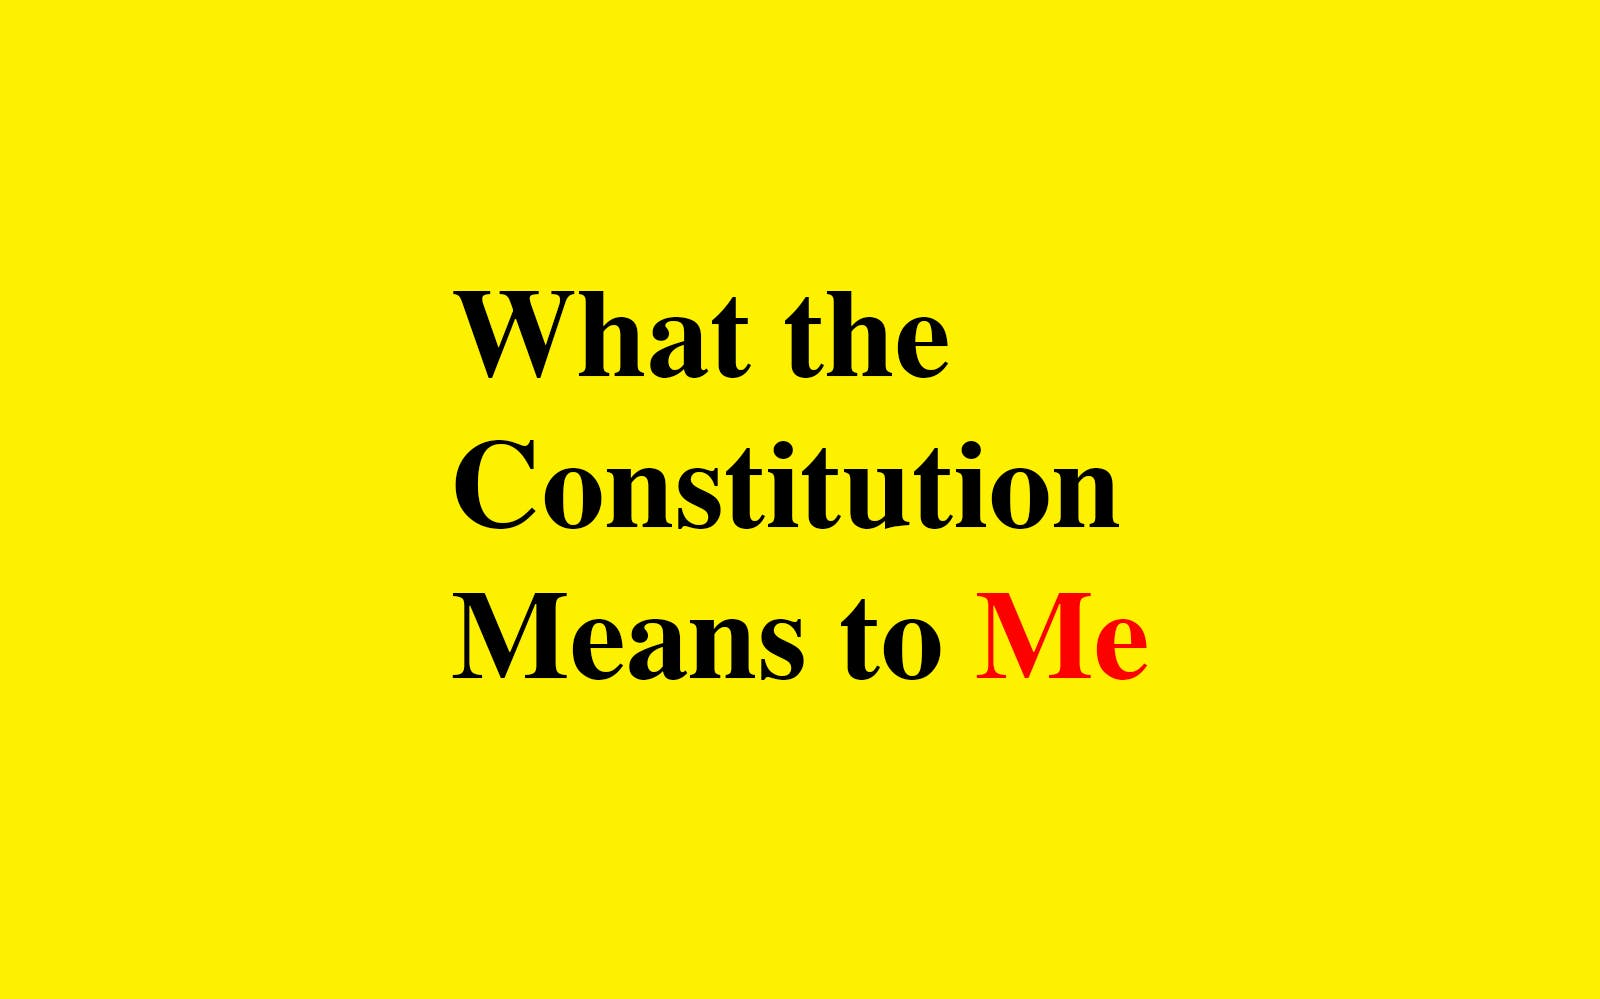 What Constitution means to me